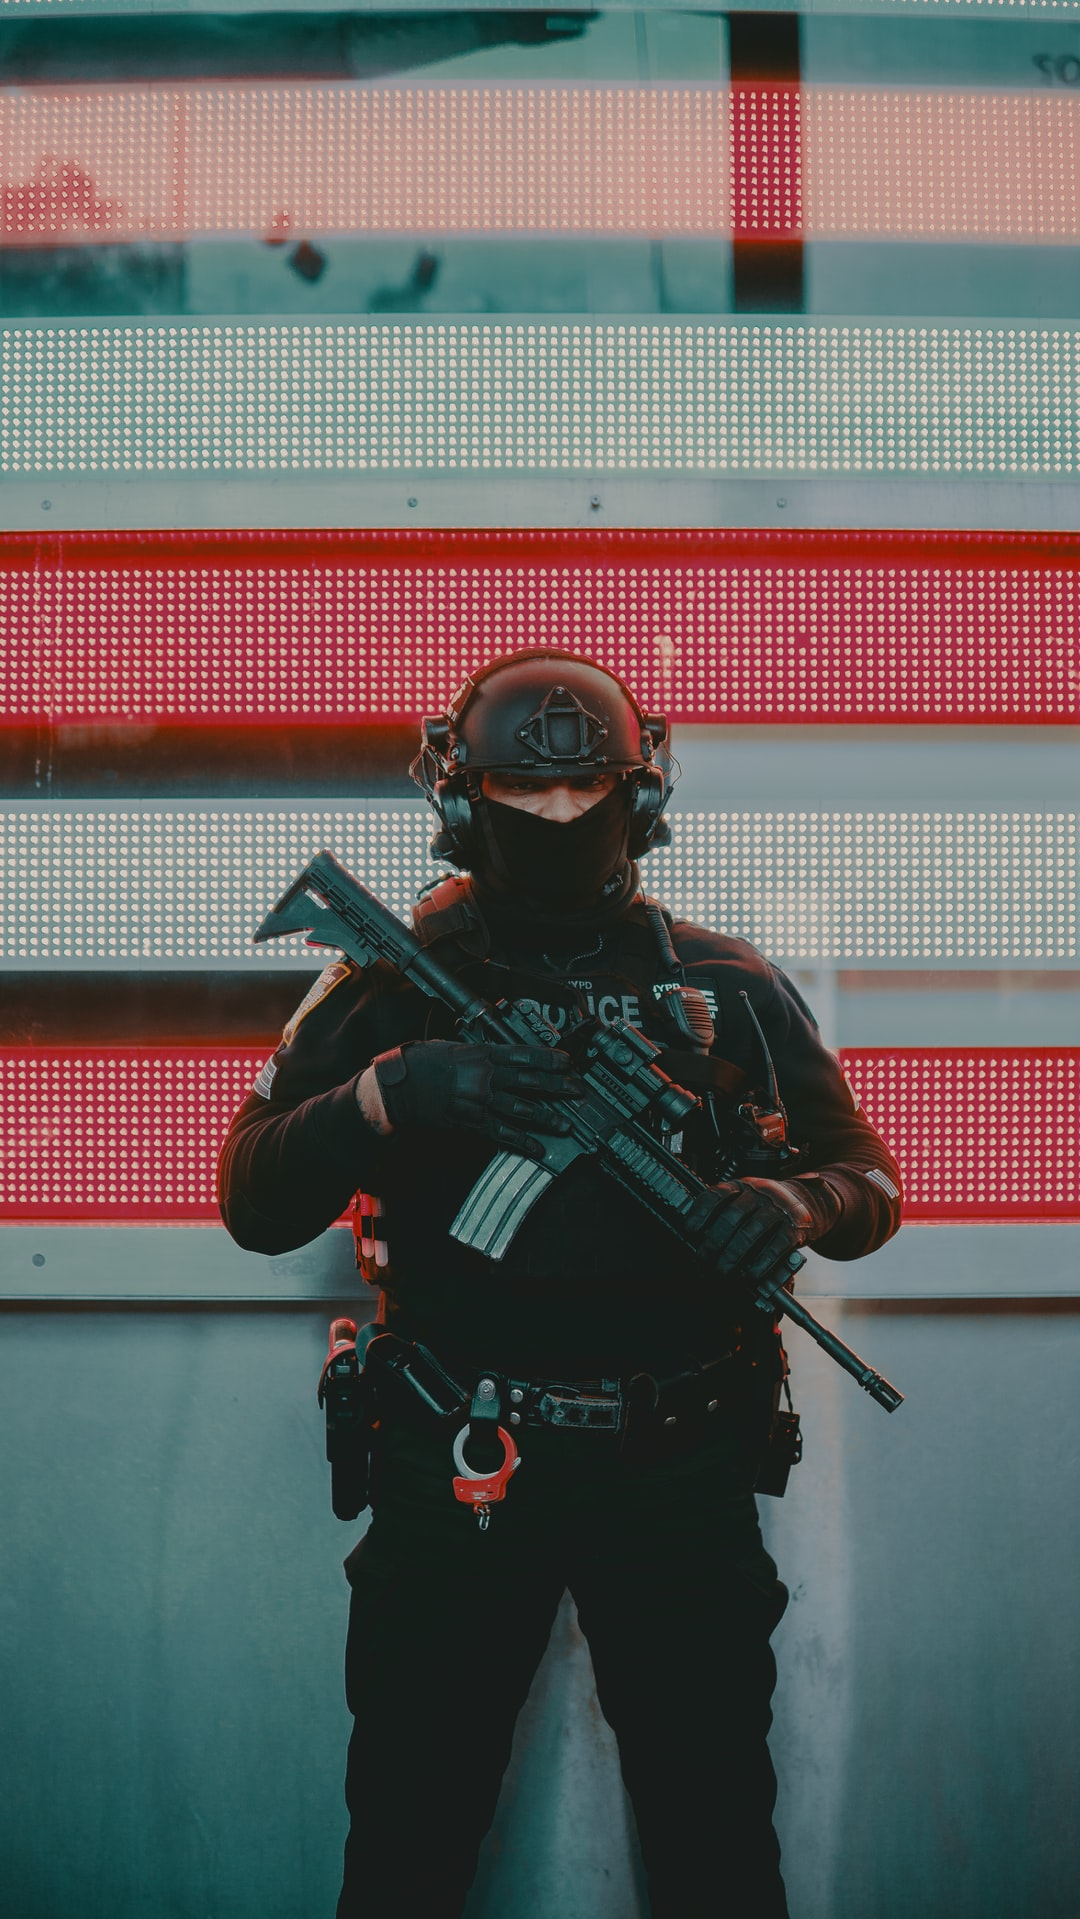 Times Square NYPD Security